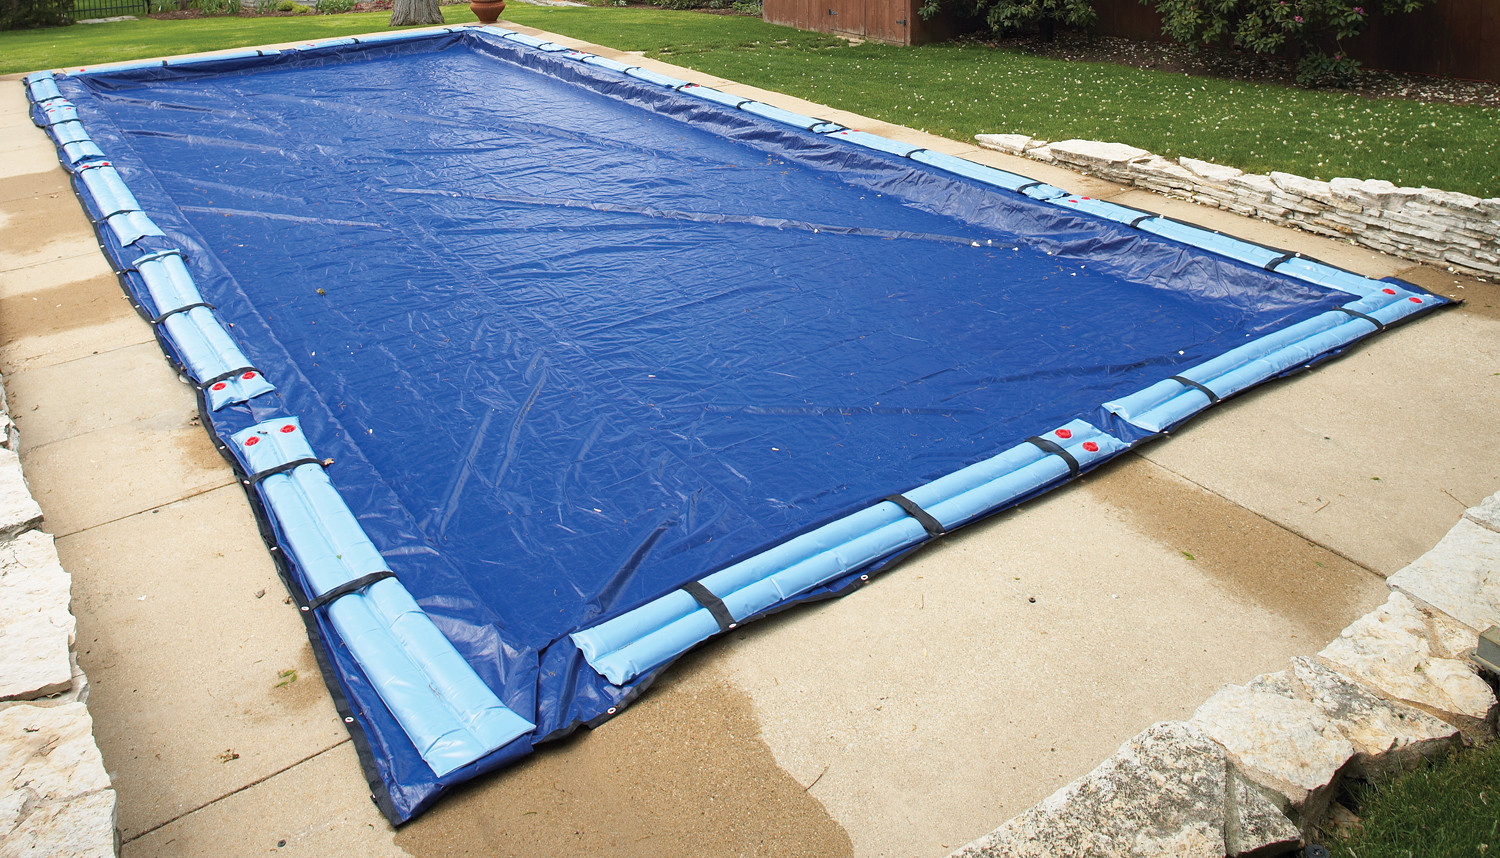 Best ideas about Inground Pool Cover . Save or Pin Winter Pool Cover Inground 20x40 ft Rectangle Arctic Armor Now.